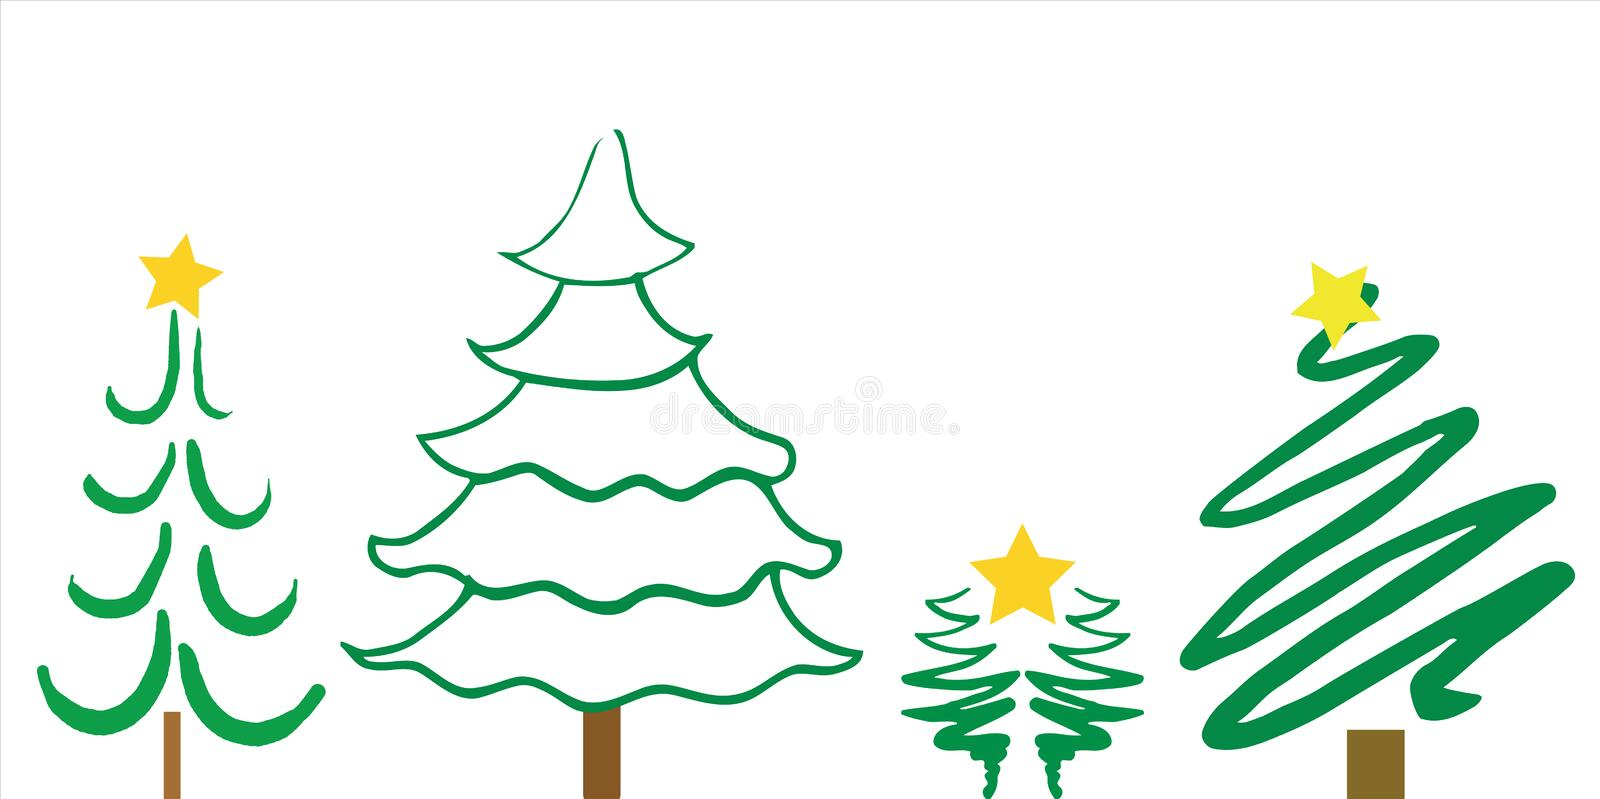 Christmas Tree Designs stock photos